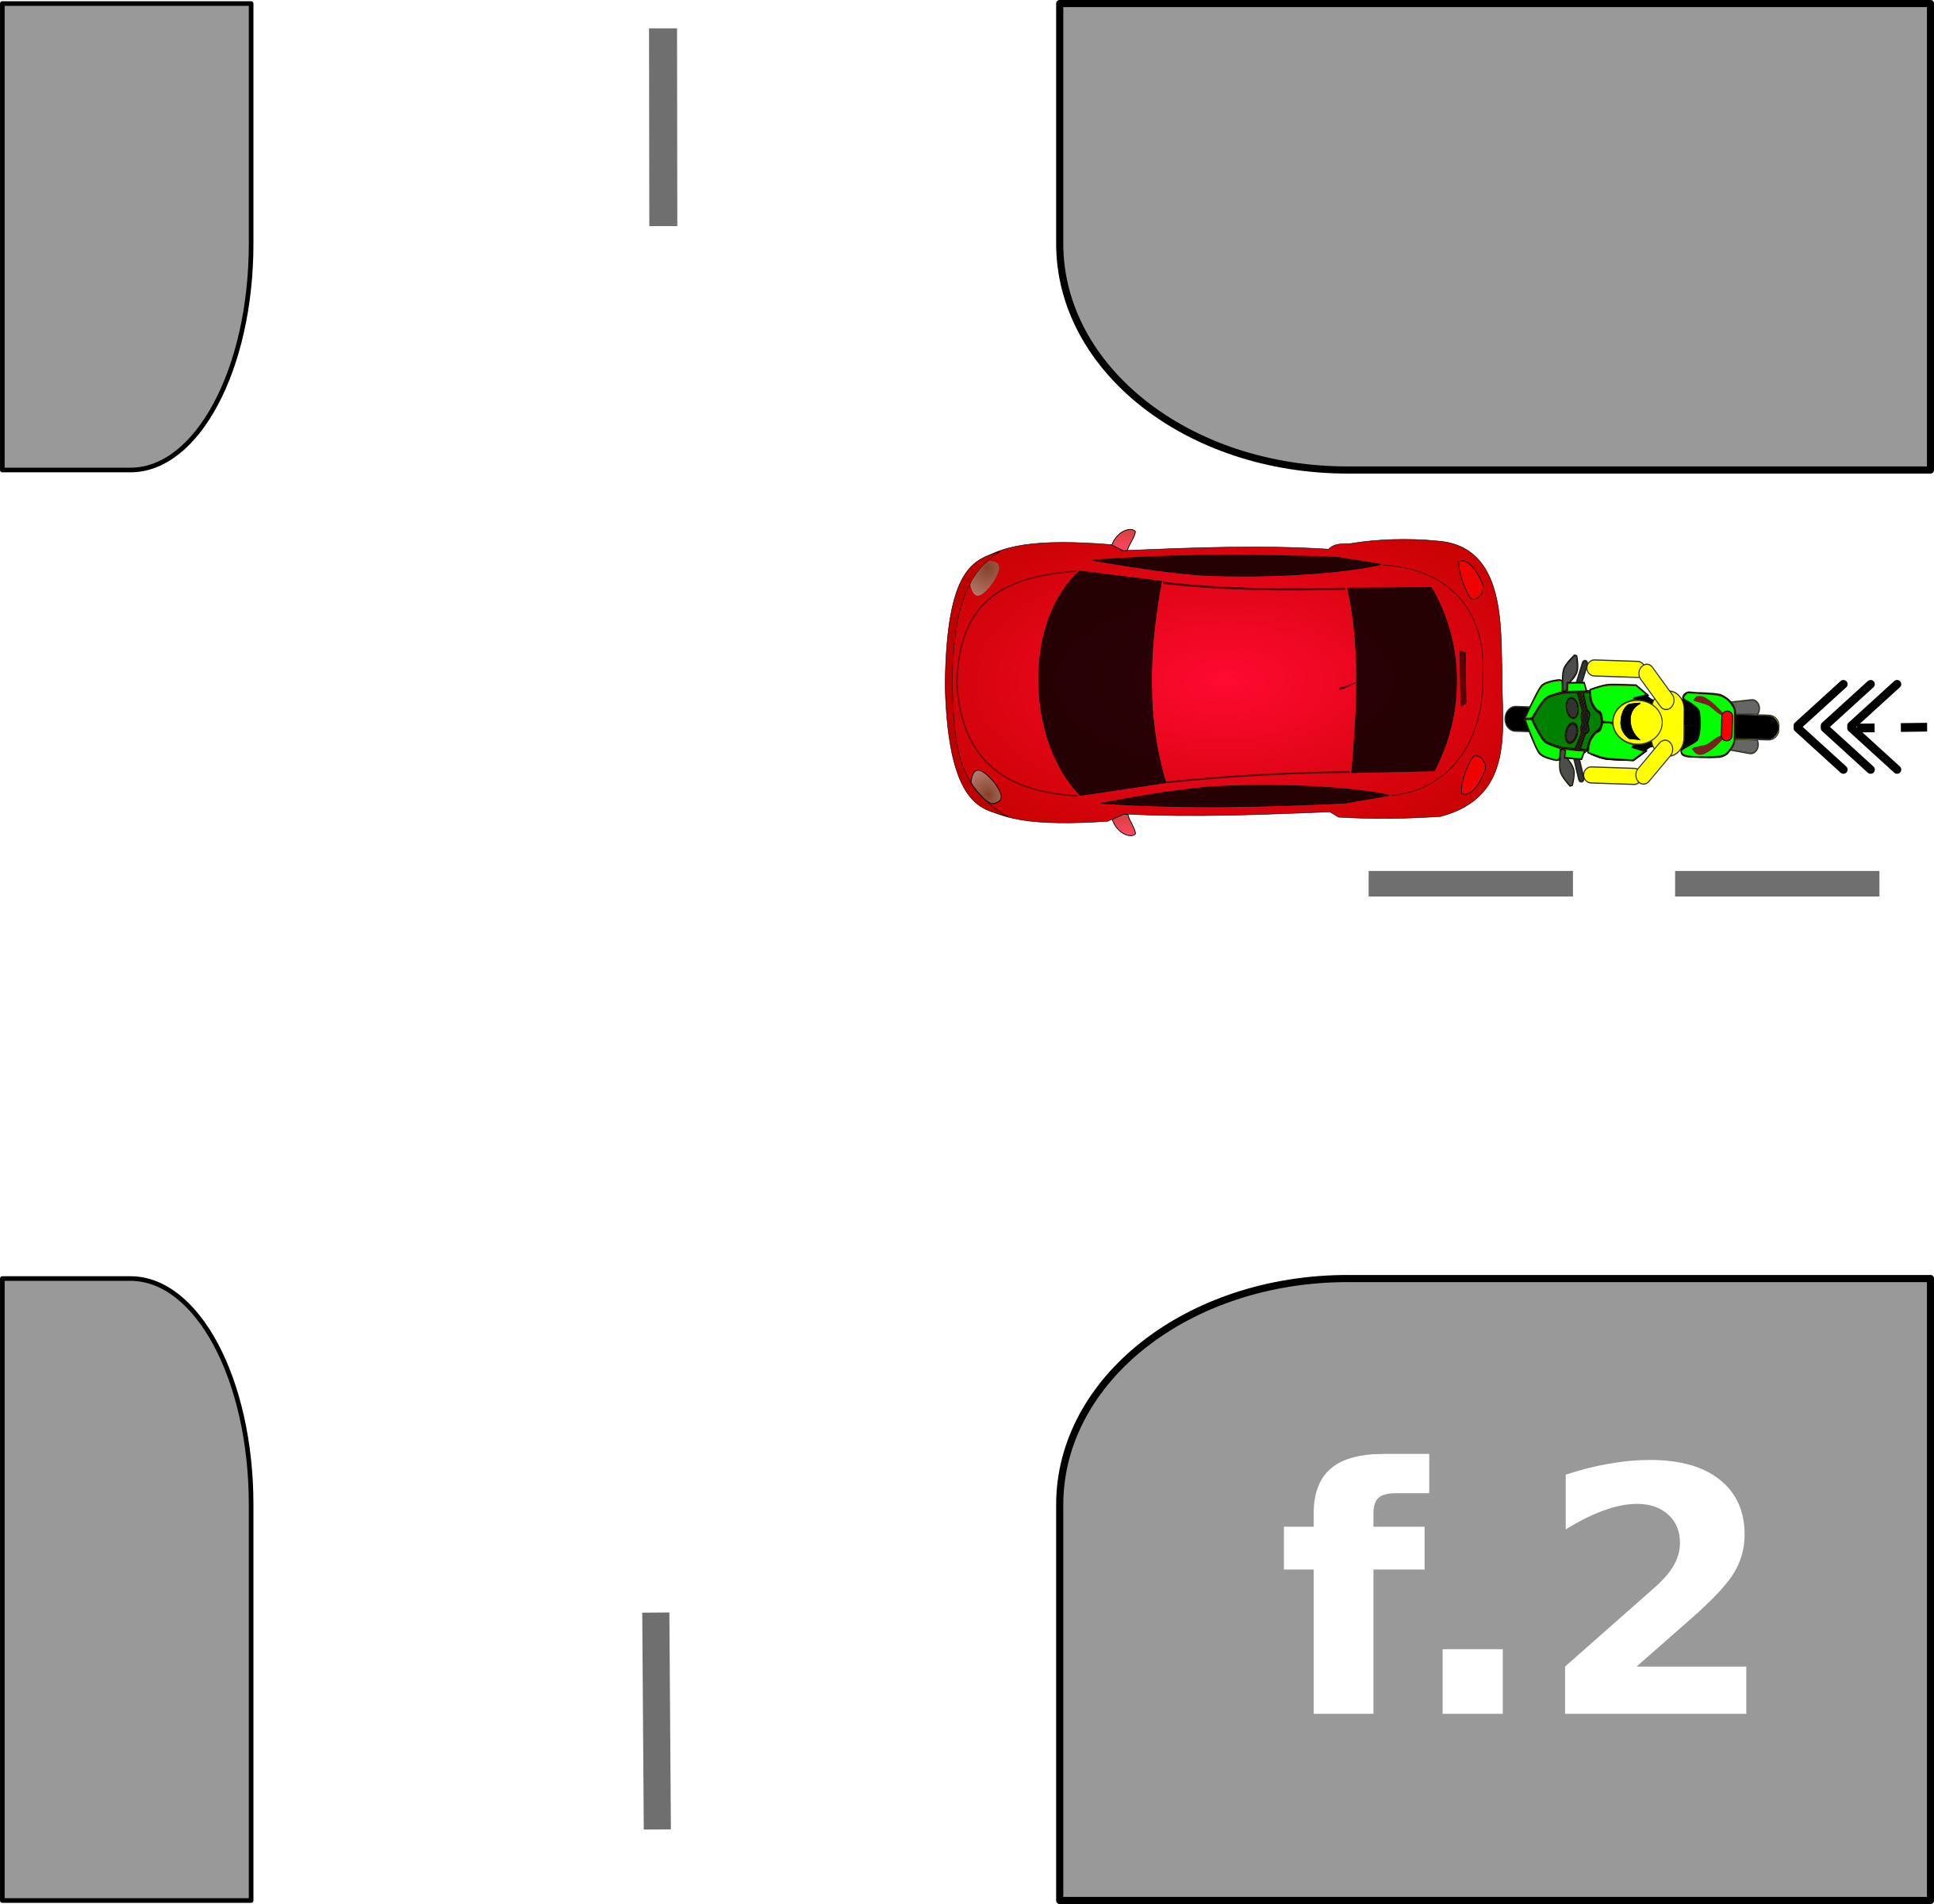 traffic accident pictograms f.2 by Gusta